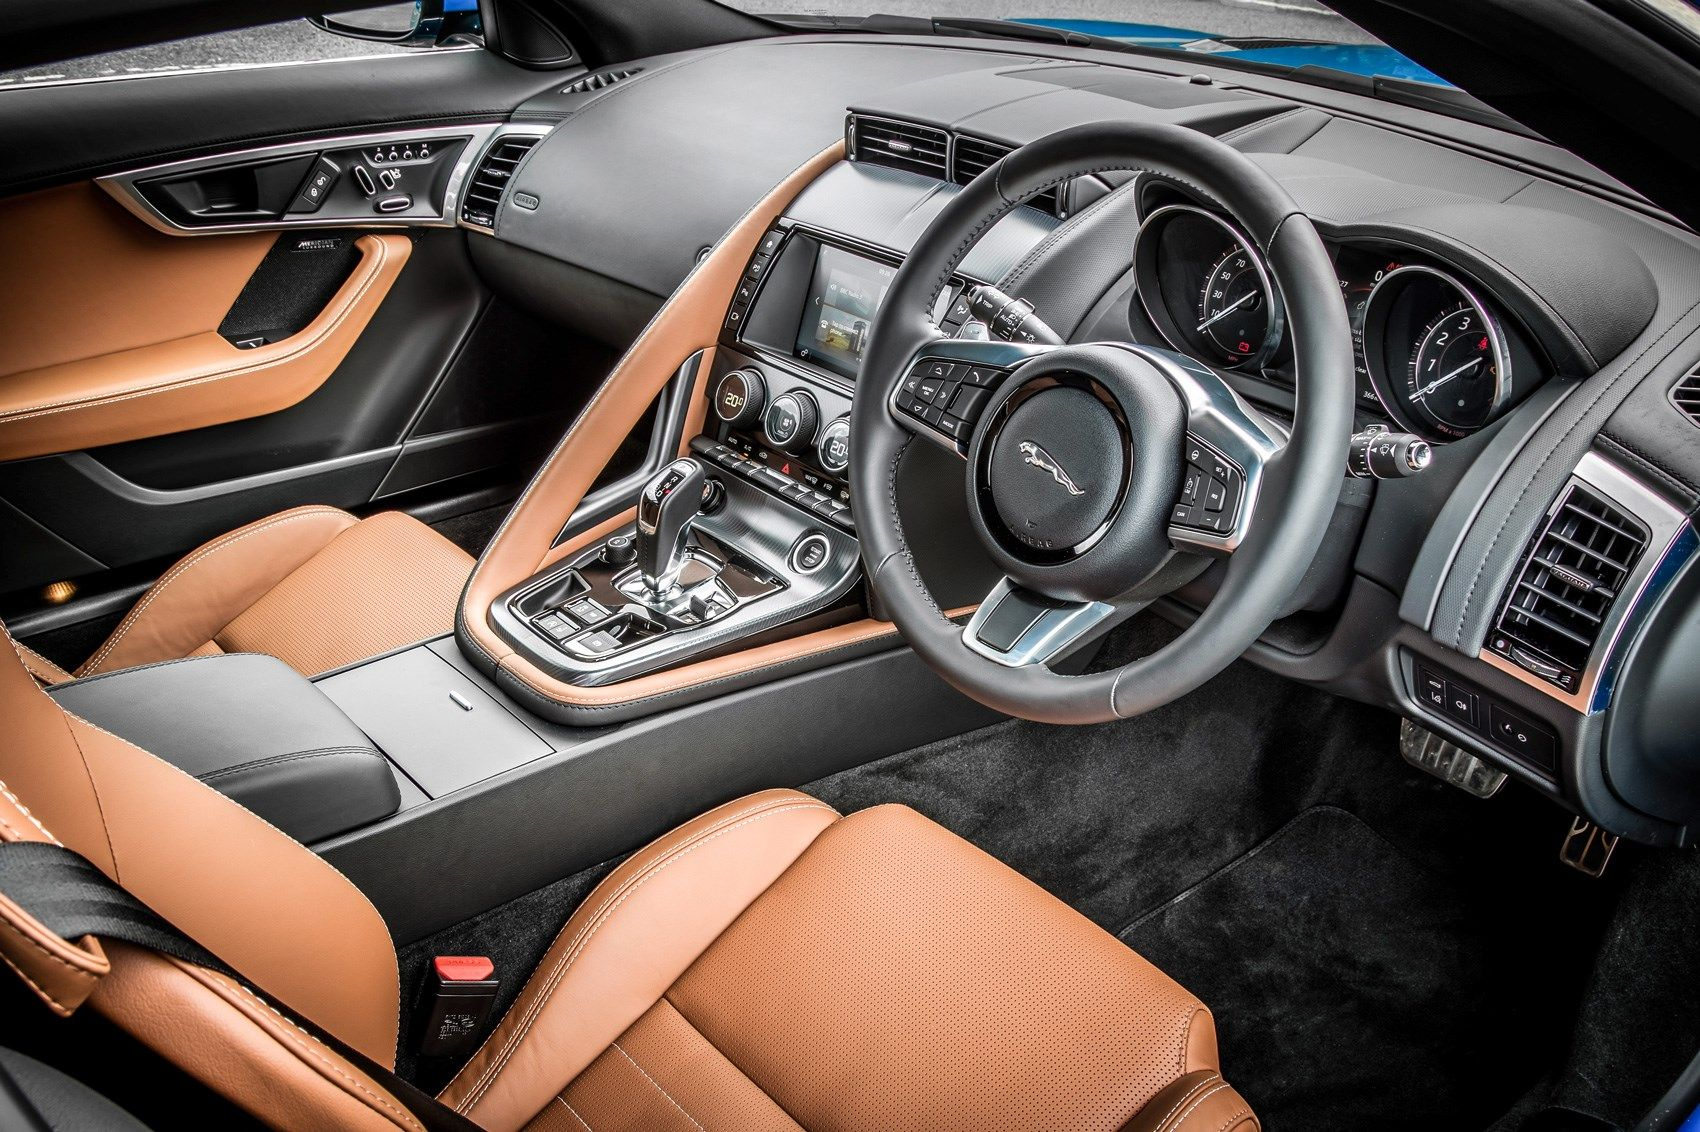 Best Of 2017 Jaguar F Type Coupe Interior And Review In 2020 Jaguar F Type Jaguar Luxury Car Interior